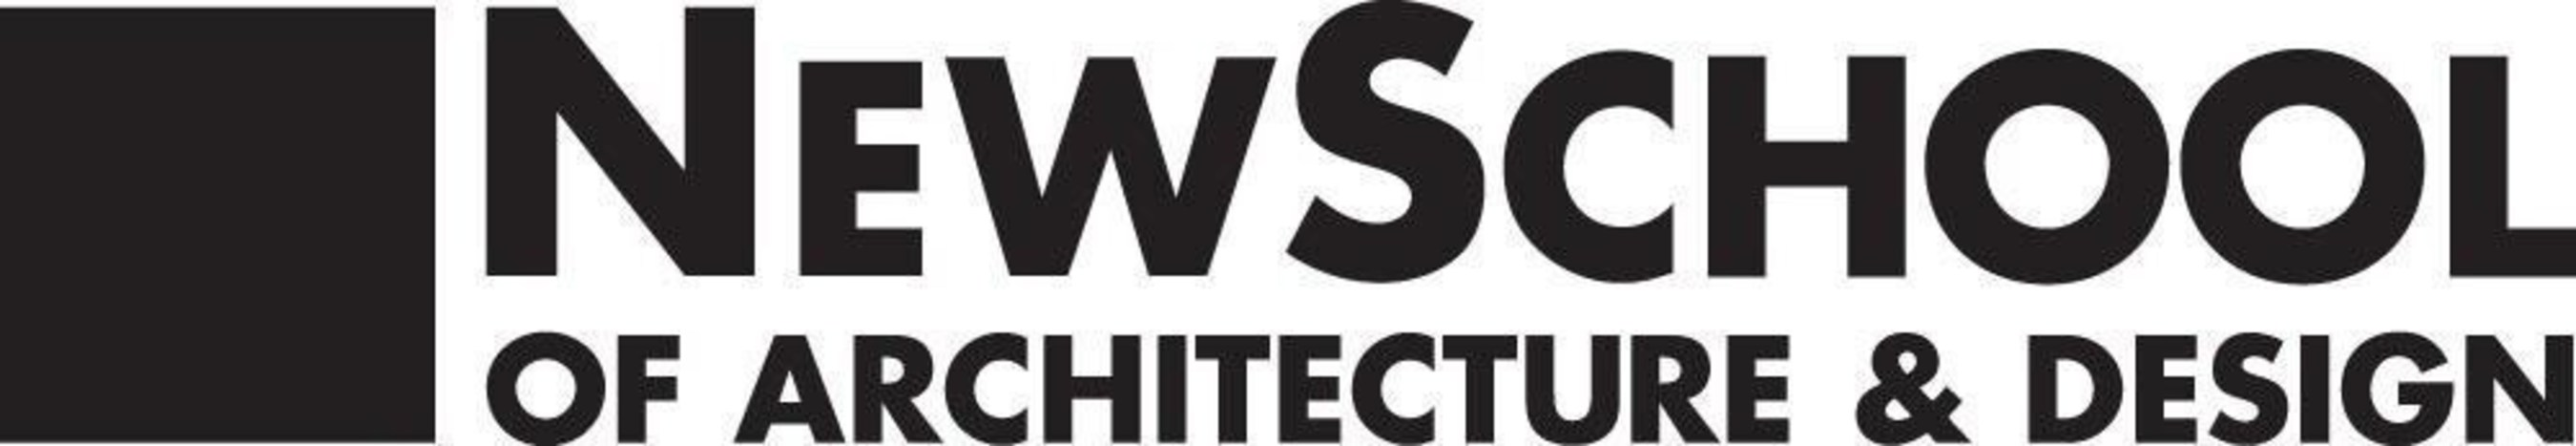 Located in downtown San Diego, NewSchool prepares students for career success in design fields through an emphasis on interdisciplinary and global design skills, industry collaborations and real-world projects. Programs of study include architecture, construction management, product design, media design, game development, and interior architecture & design. NewSchool is accredited by the Western Association of Schools and Colleges (WASC) Senior College and University Commission. NewSchool's Bachelor of Architecture, Master of Architecture and Executive Master of Architecture programs are accredited by the National Architectural Accrediting Board (NAAB). (PRNewsFoto/NewSchool of Architecture &)